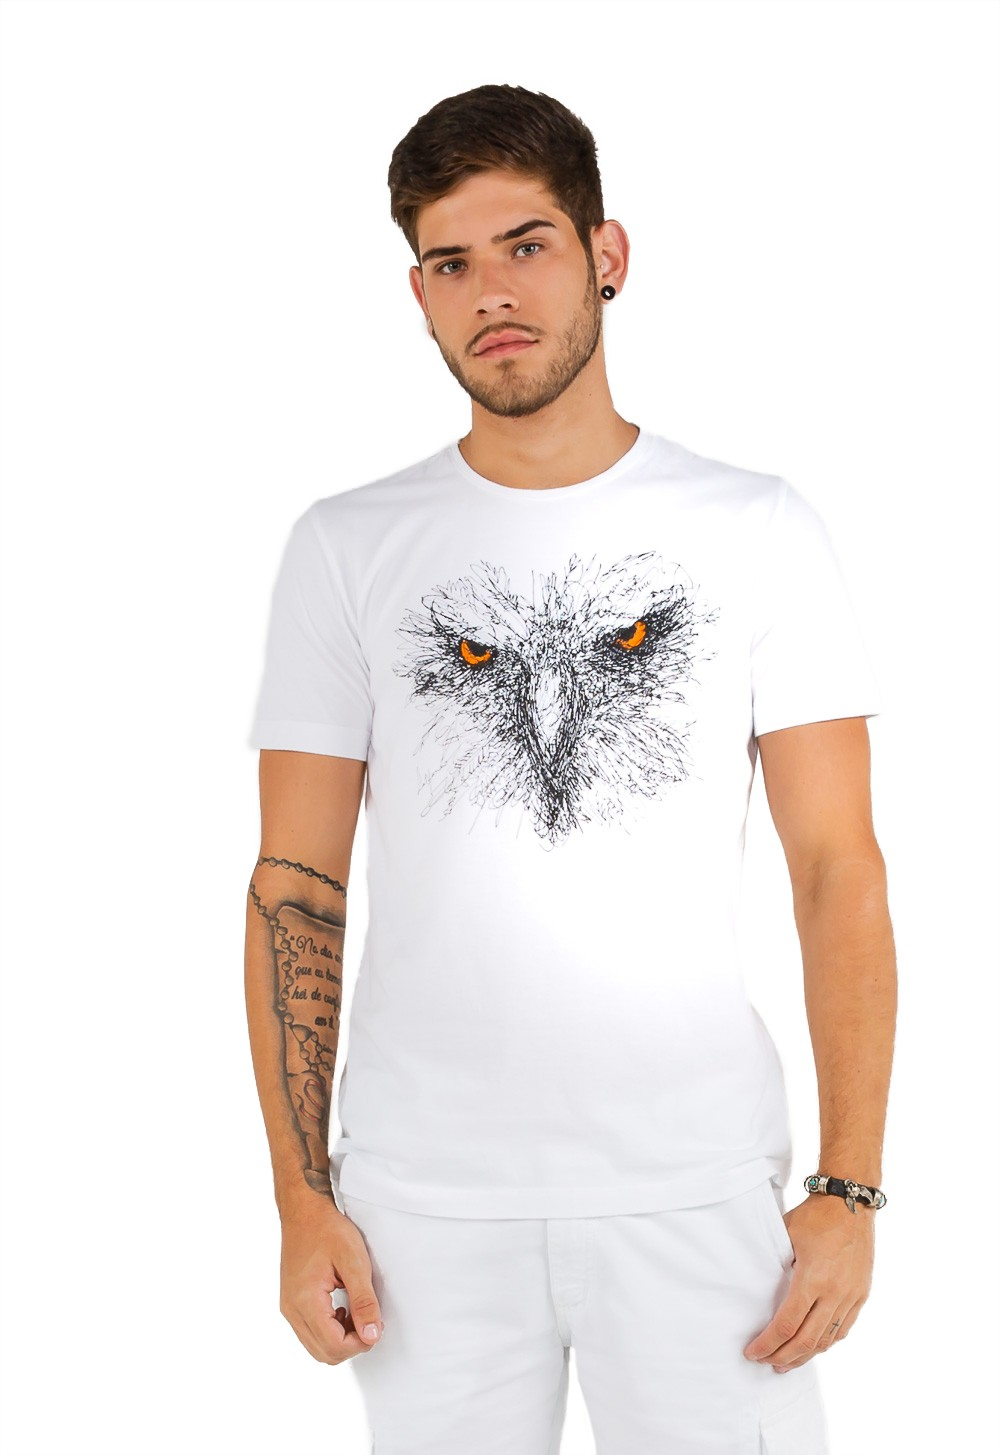 T-shirt Masculina Estampa Ave